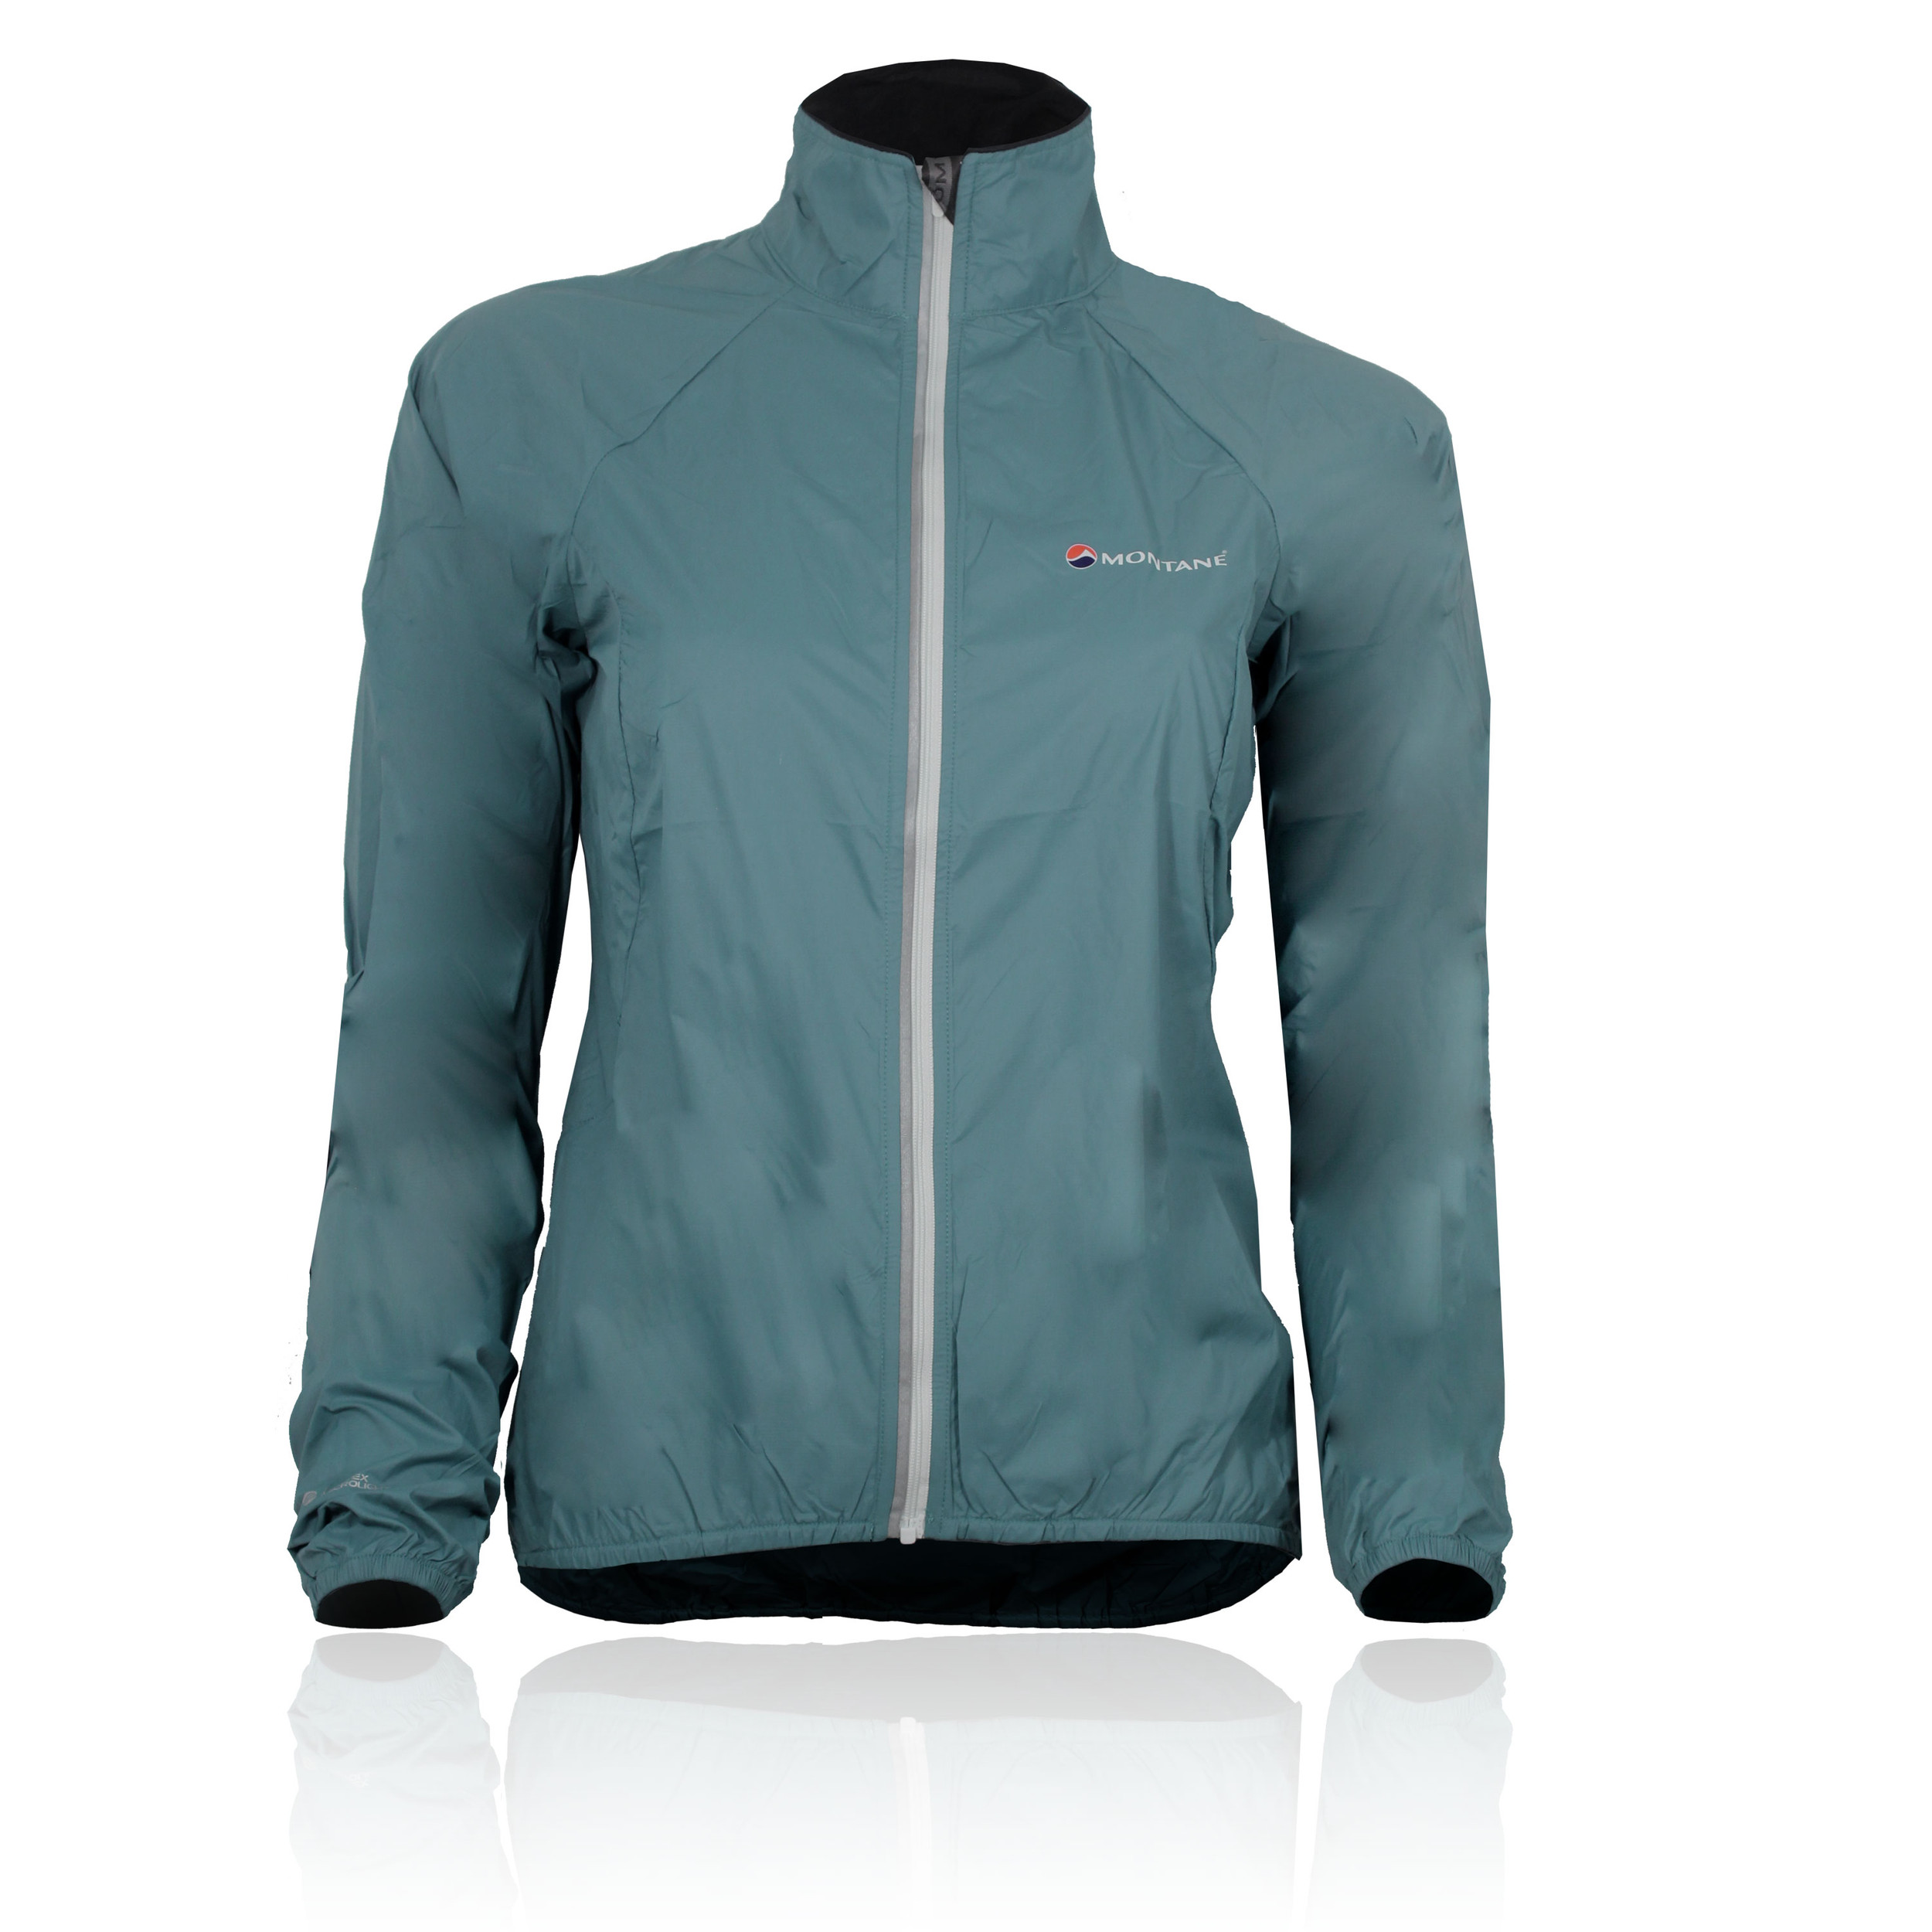 montane featherlite velo damen fahrradjacke windjacke wasserfeste jacke blau. Black Bedroom Furniture Sets. Home Design Ideas